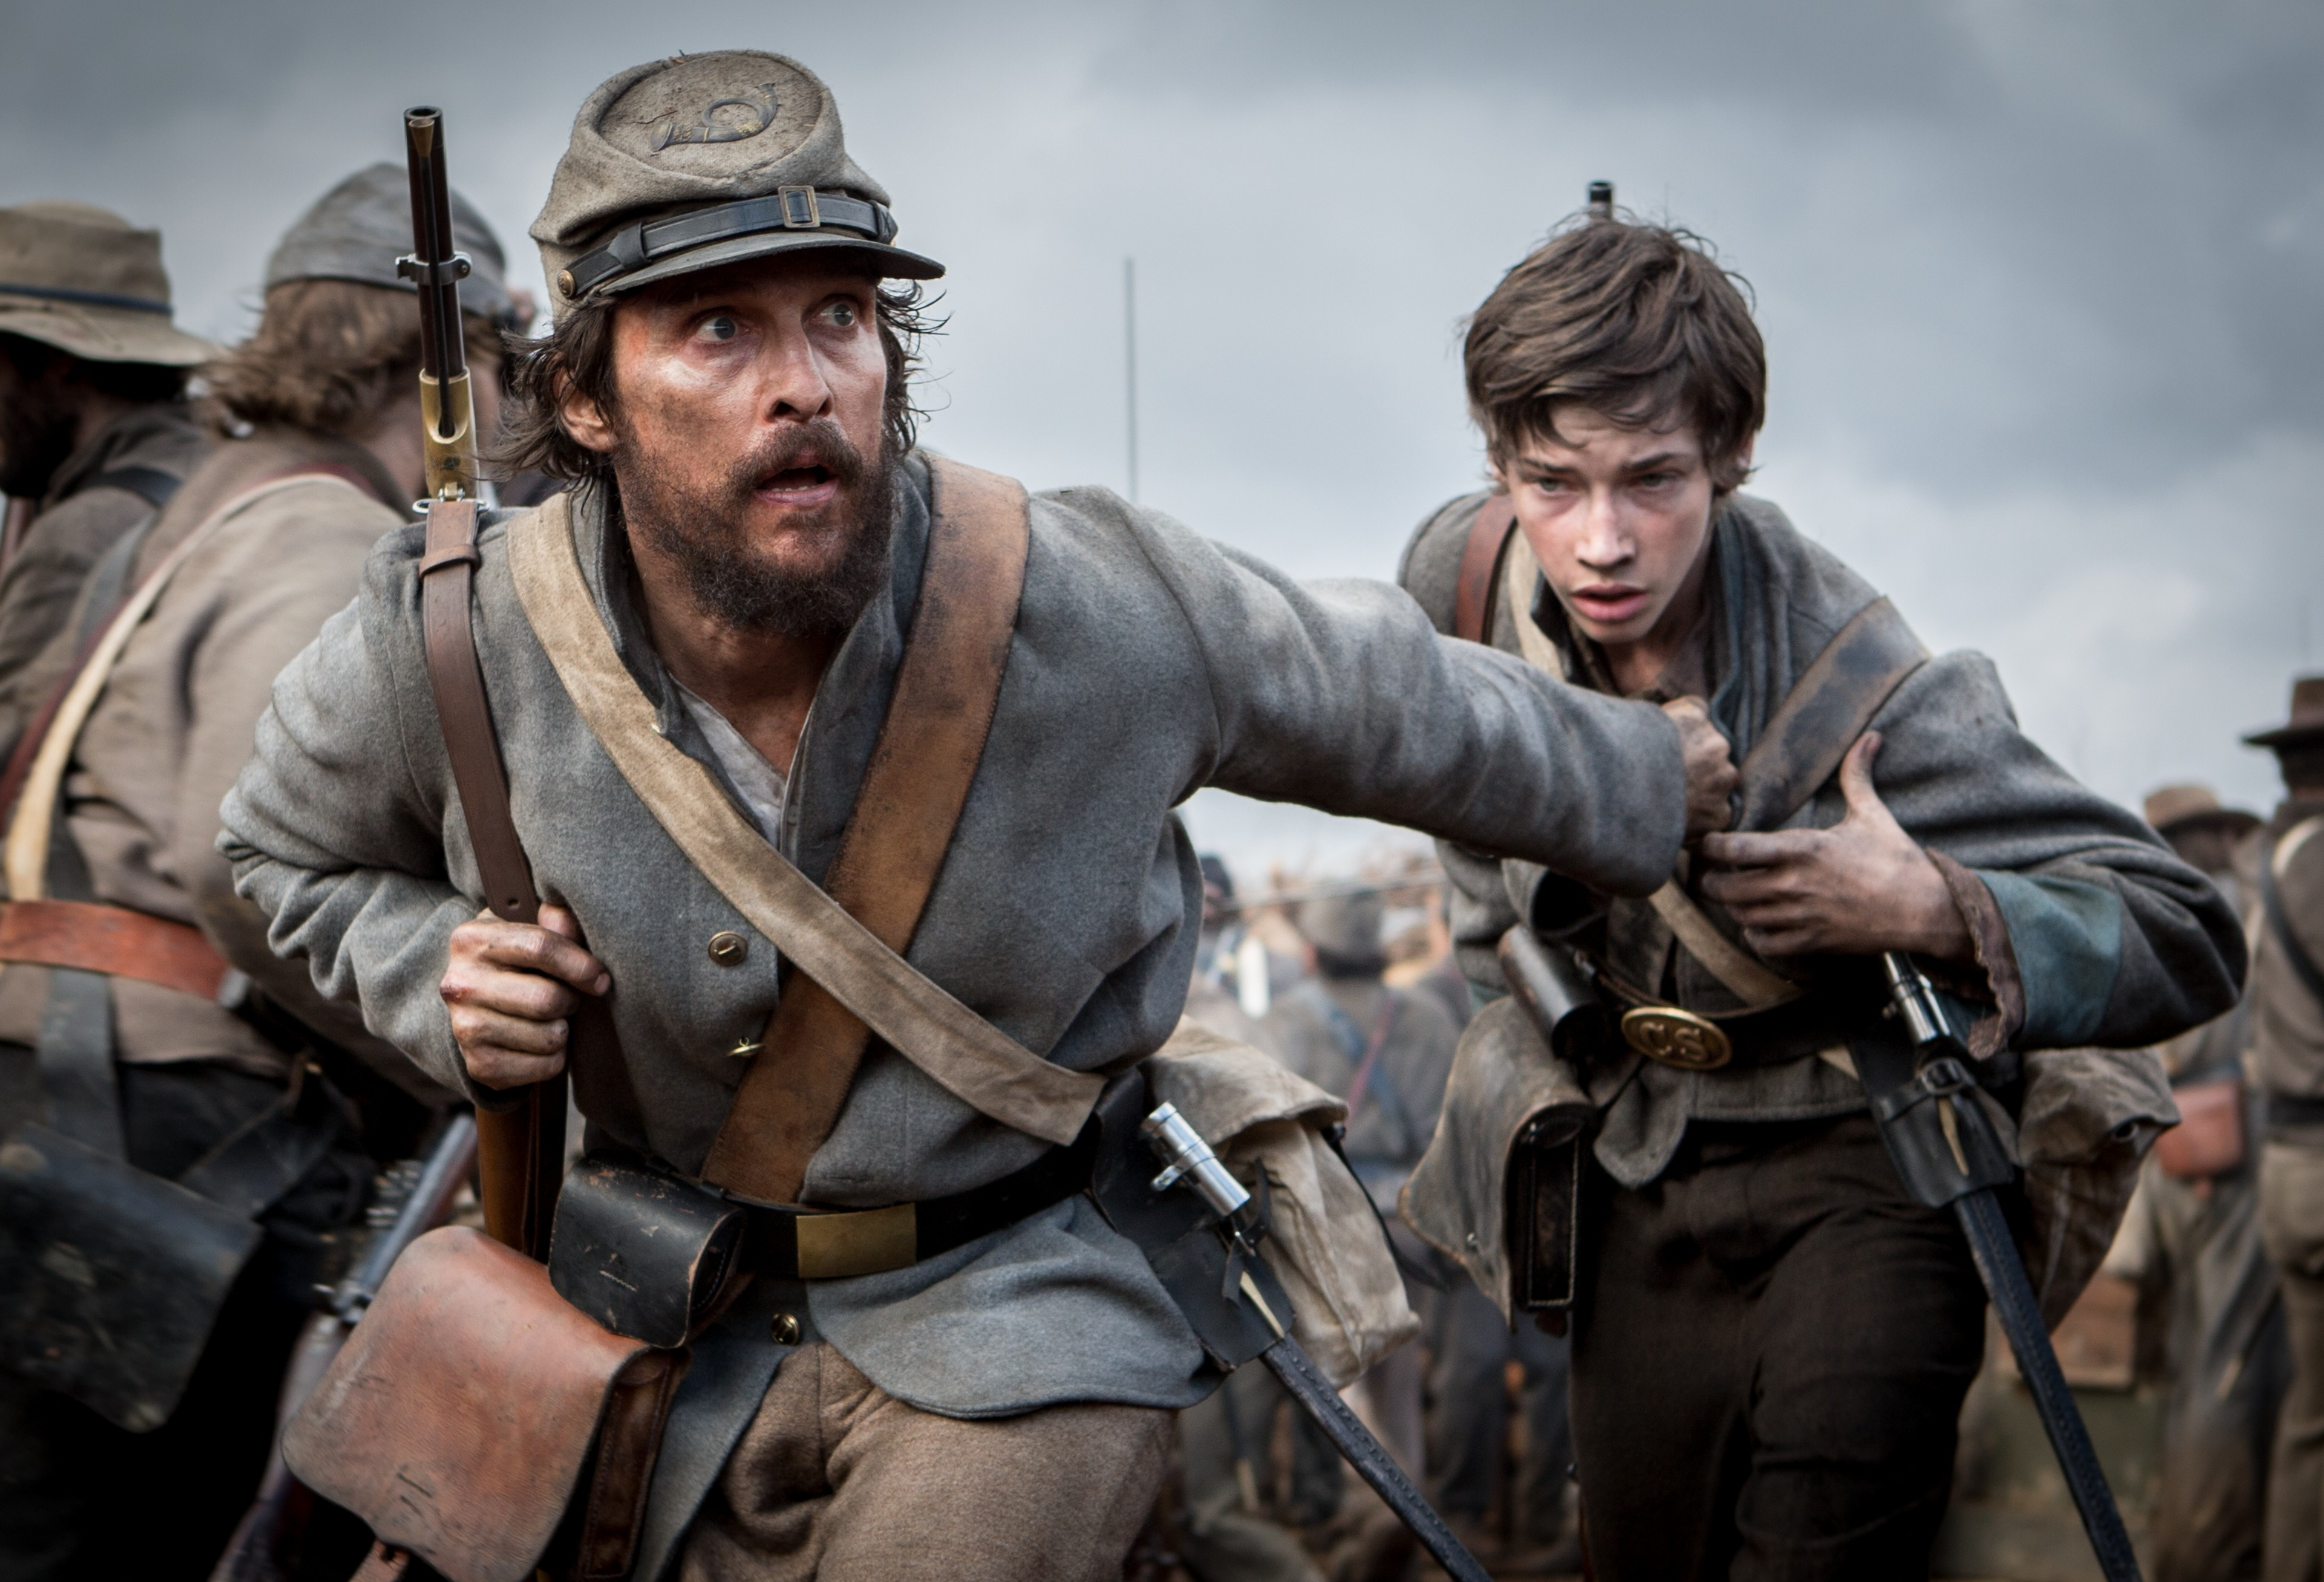 matthew mcconaughet free state of jones